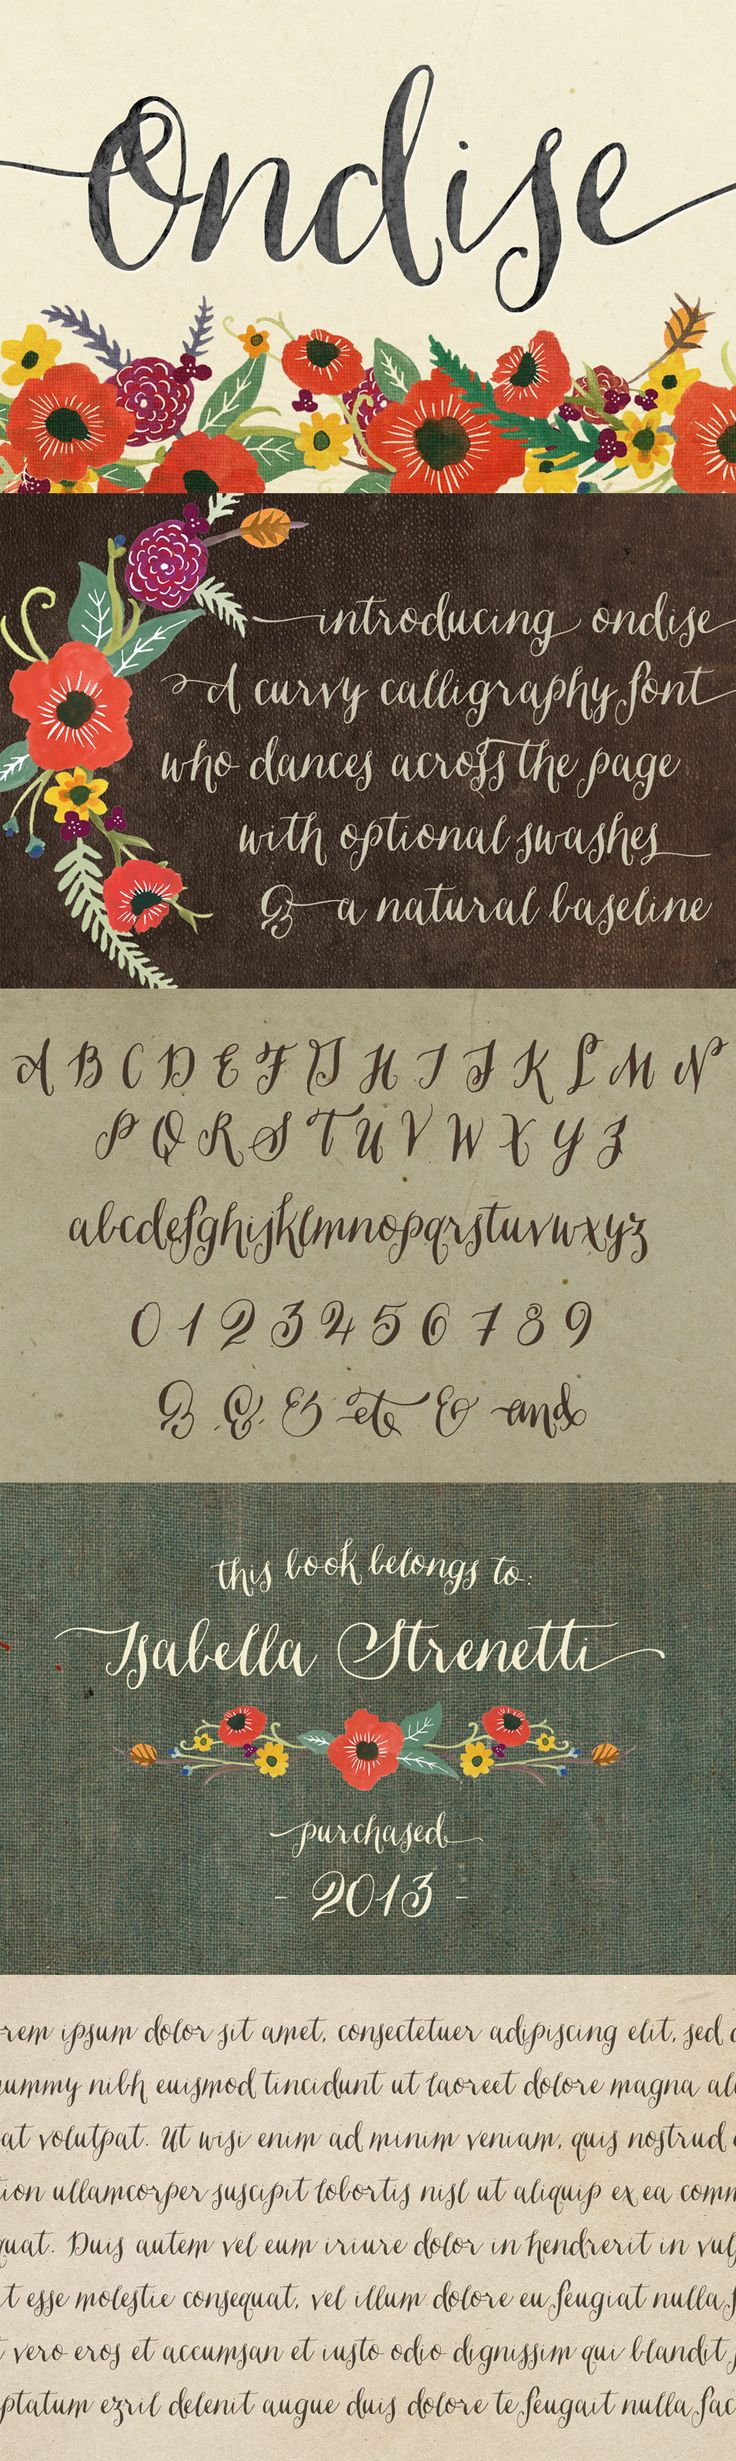 Ondise Font by Magpie Paper Works | 22 Professional & Artistic Fonts Apr 2015